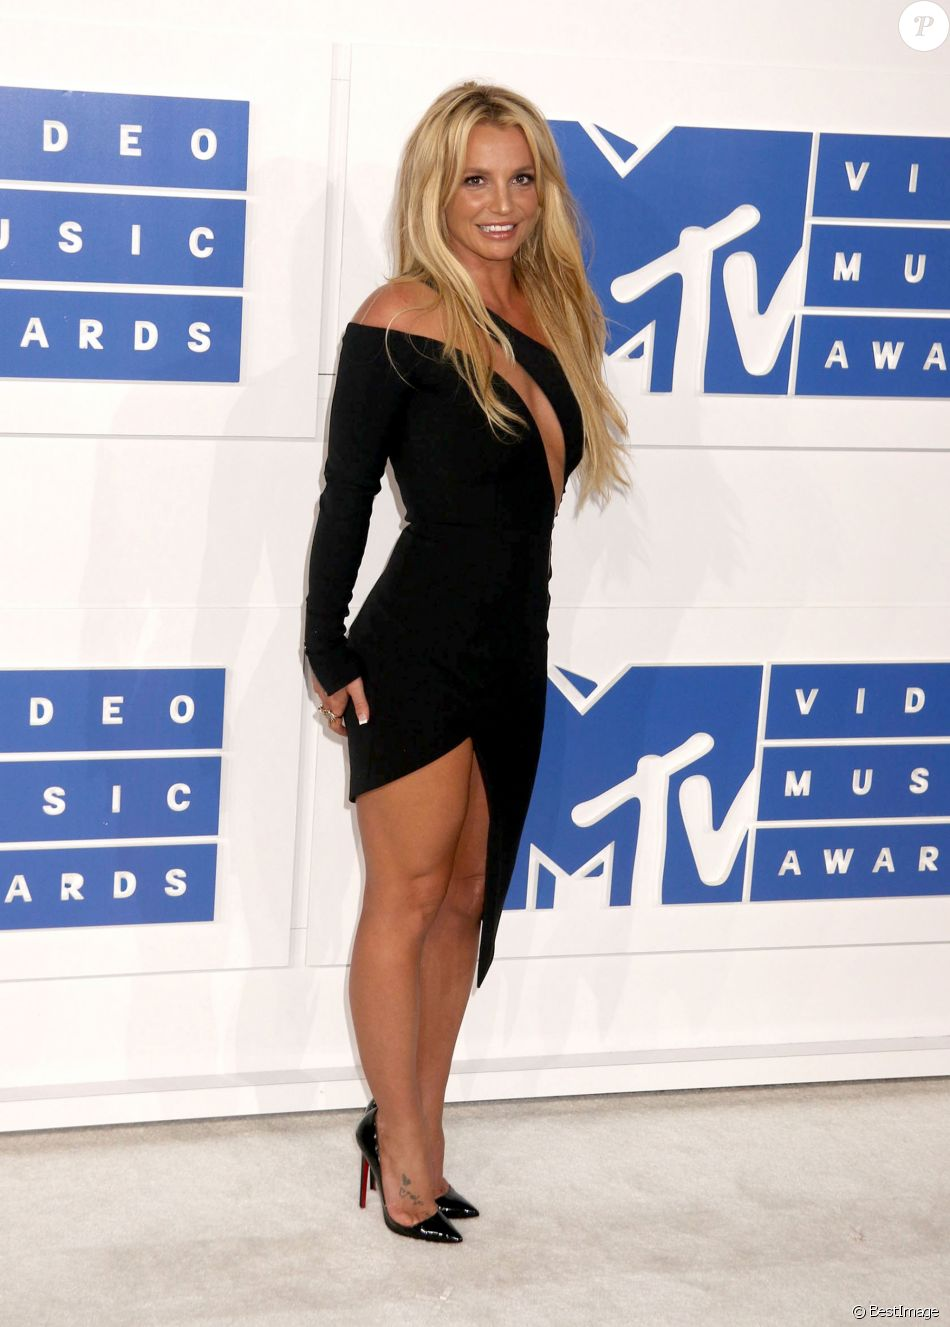 Britney Spears - Photocall des MTV Video Music Awards 2016 au Madison Square Garden à New York. Le 28 août 2016.